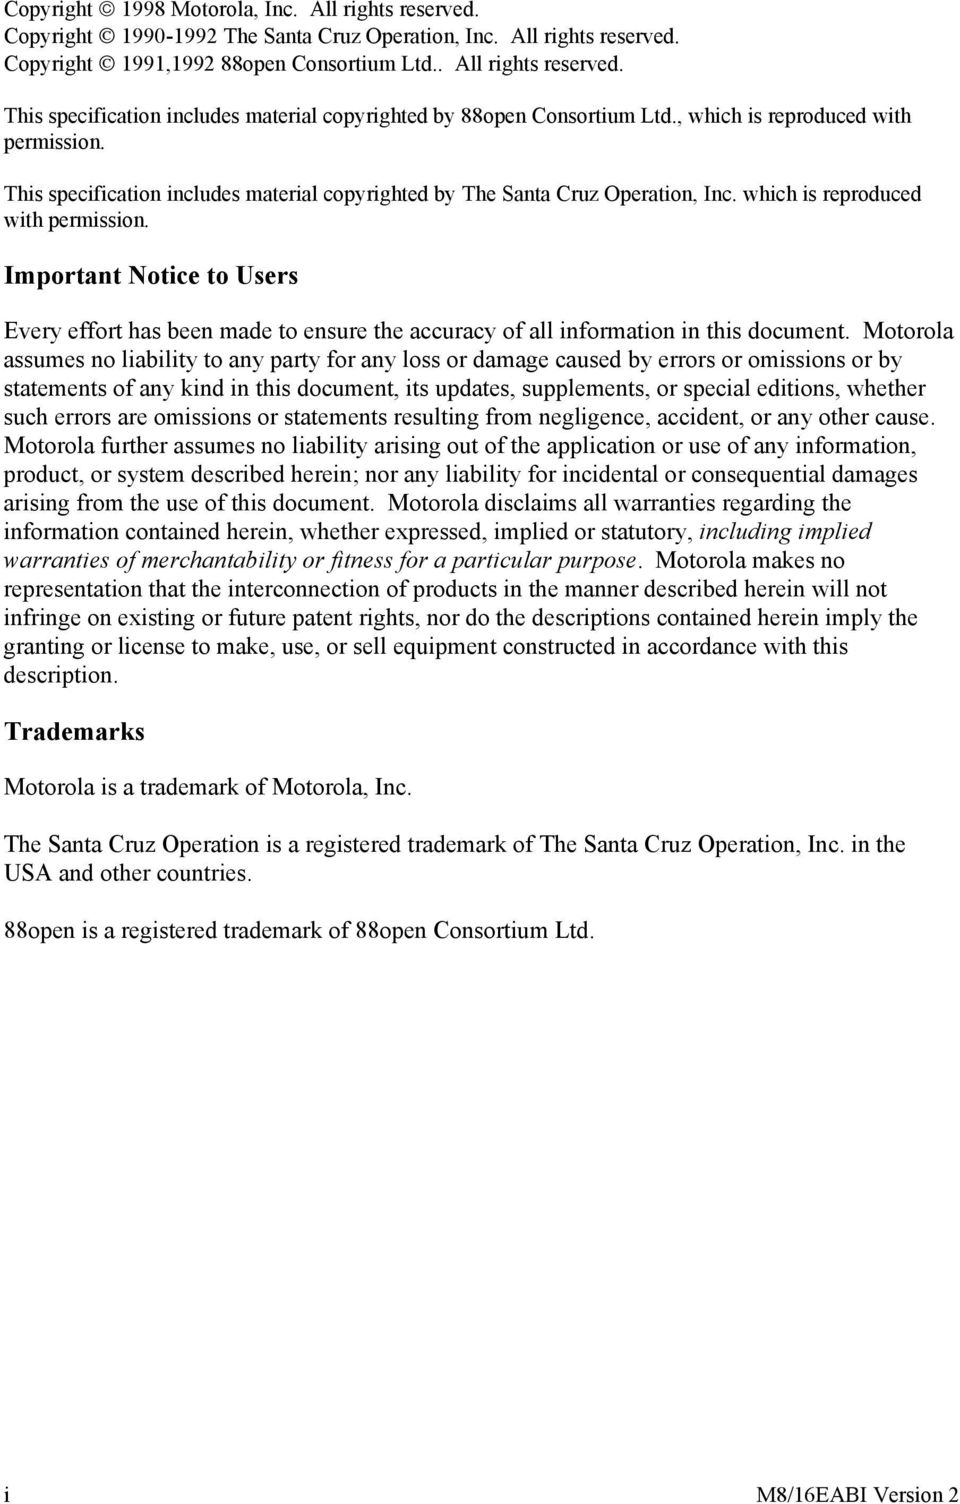 Motorola assumes no liability to any party for any loss or damage caused by errors or omissions or by statements of any kind in this document, its updates, supplements, or special editions, whether